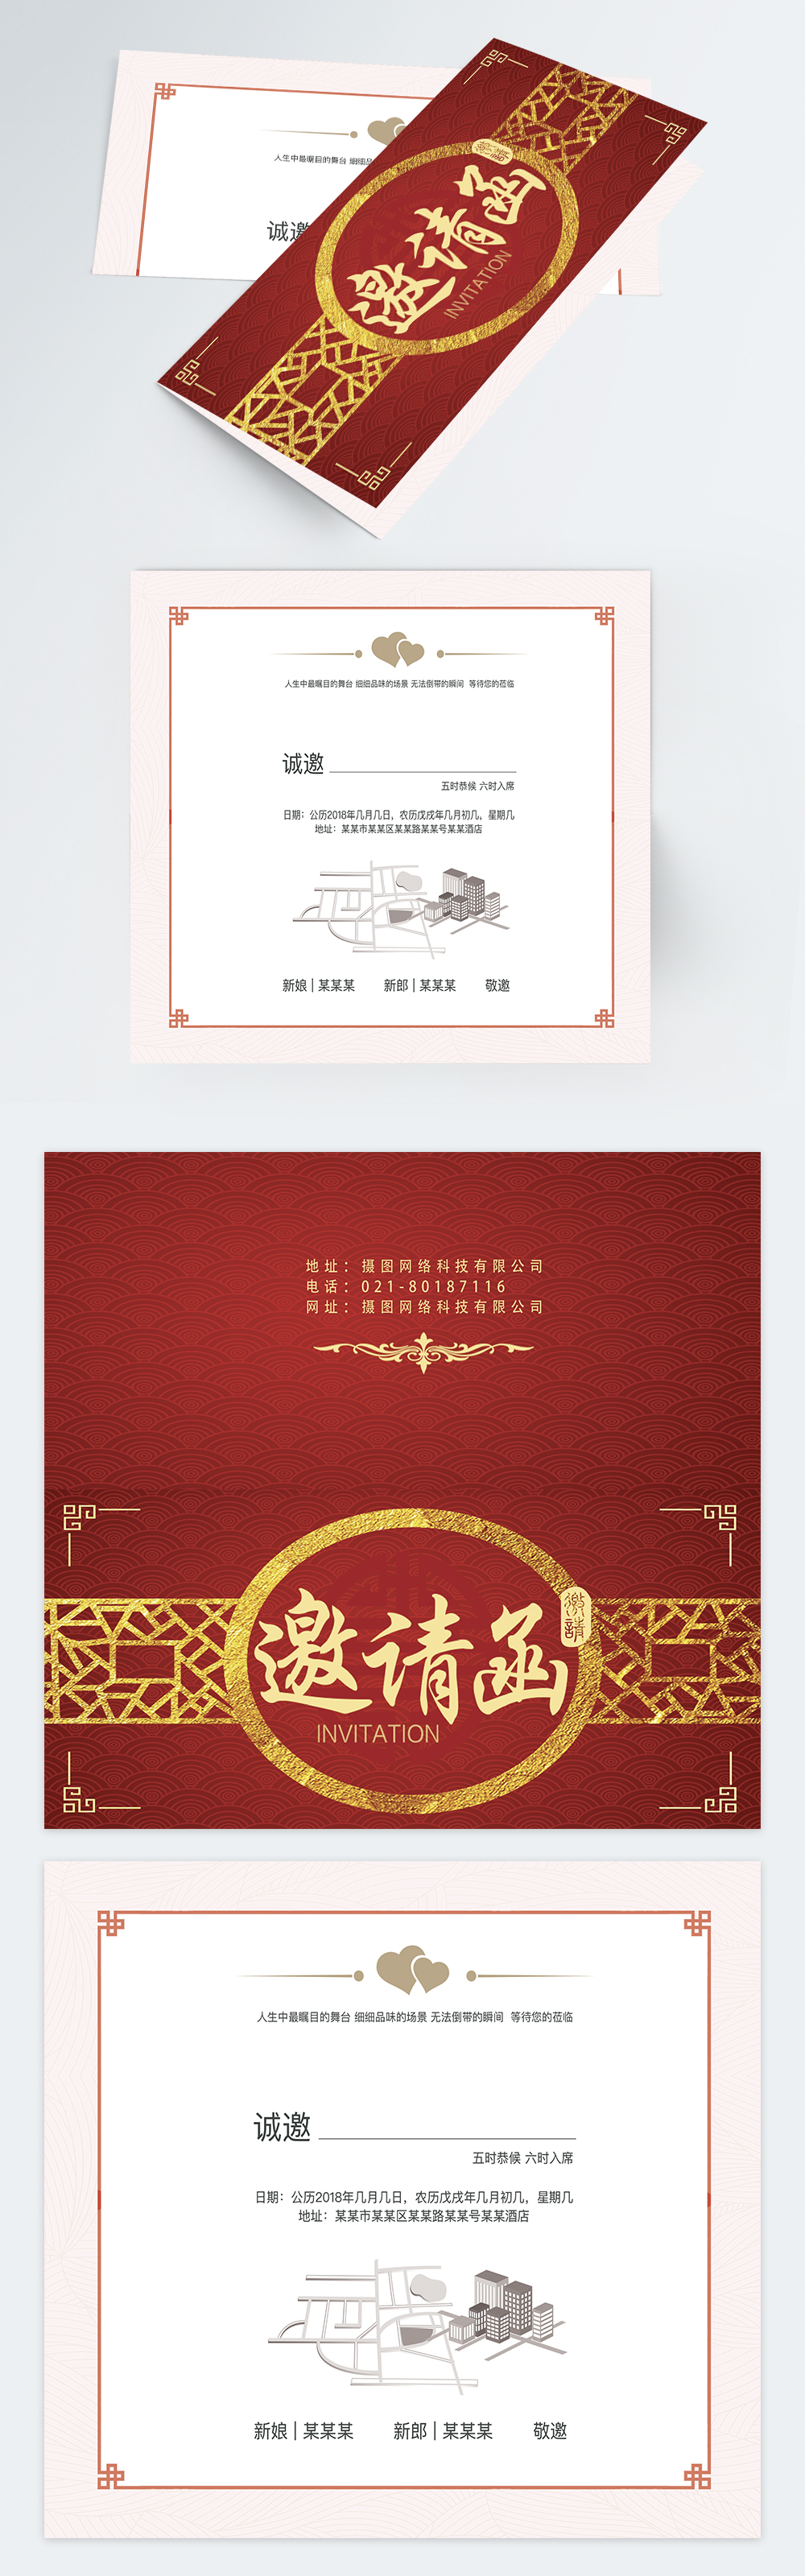 The design of the red wedding invitation letter template ...